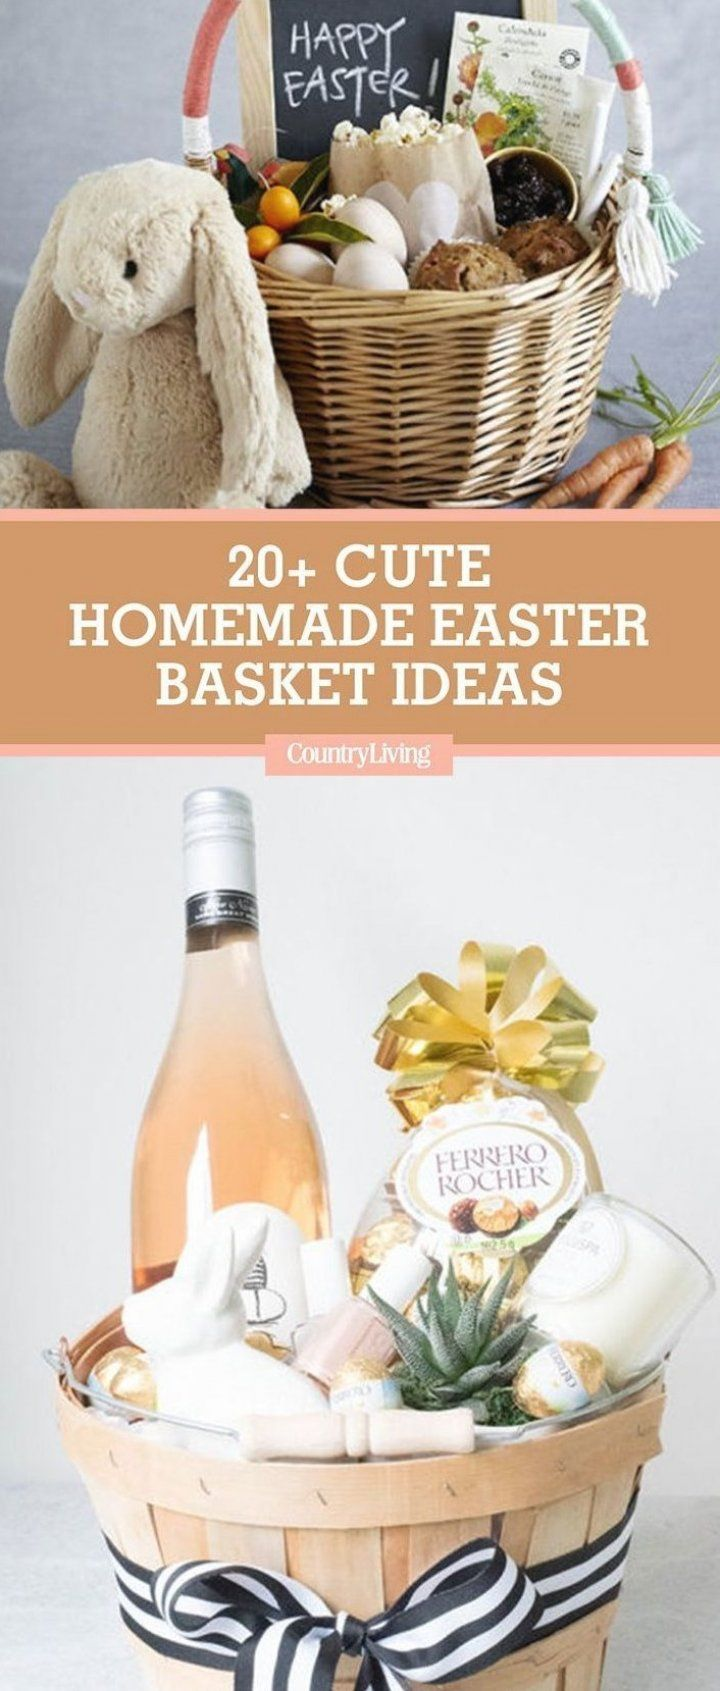 20 Cute Homemade Easter Basket Ideas Easter Gifts For Kids And Adults Giftsforkids Coolgift In 2020 Homemade Easter Baskets Easter Basket Diy Easter Gifts For Kids